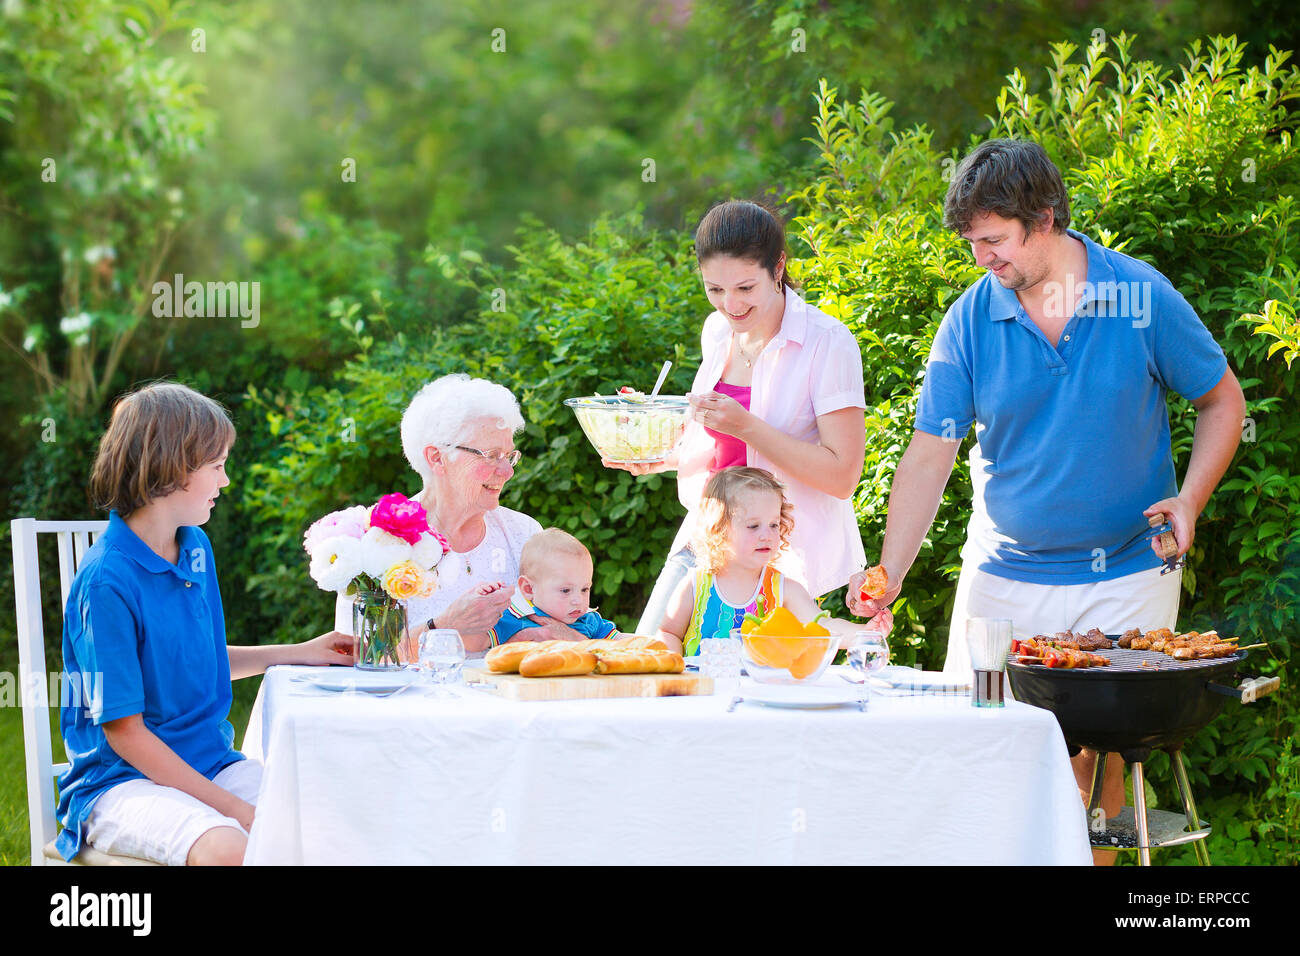 Grill barbecue backyard party. Happy big family enjoying BBQ lunch with grandmother eating meat in the garden with - Stock Image